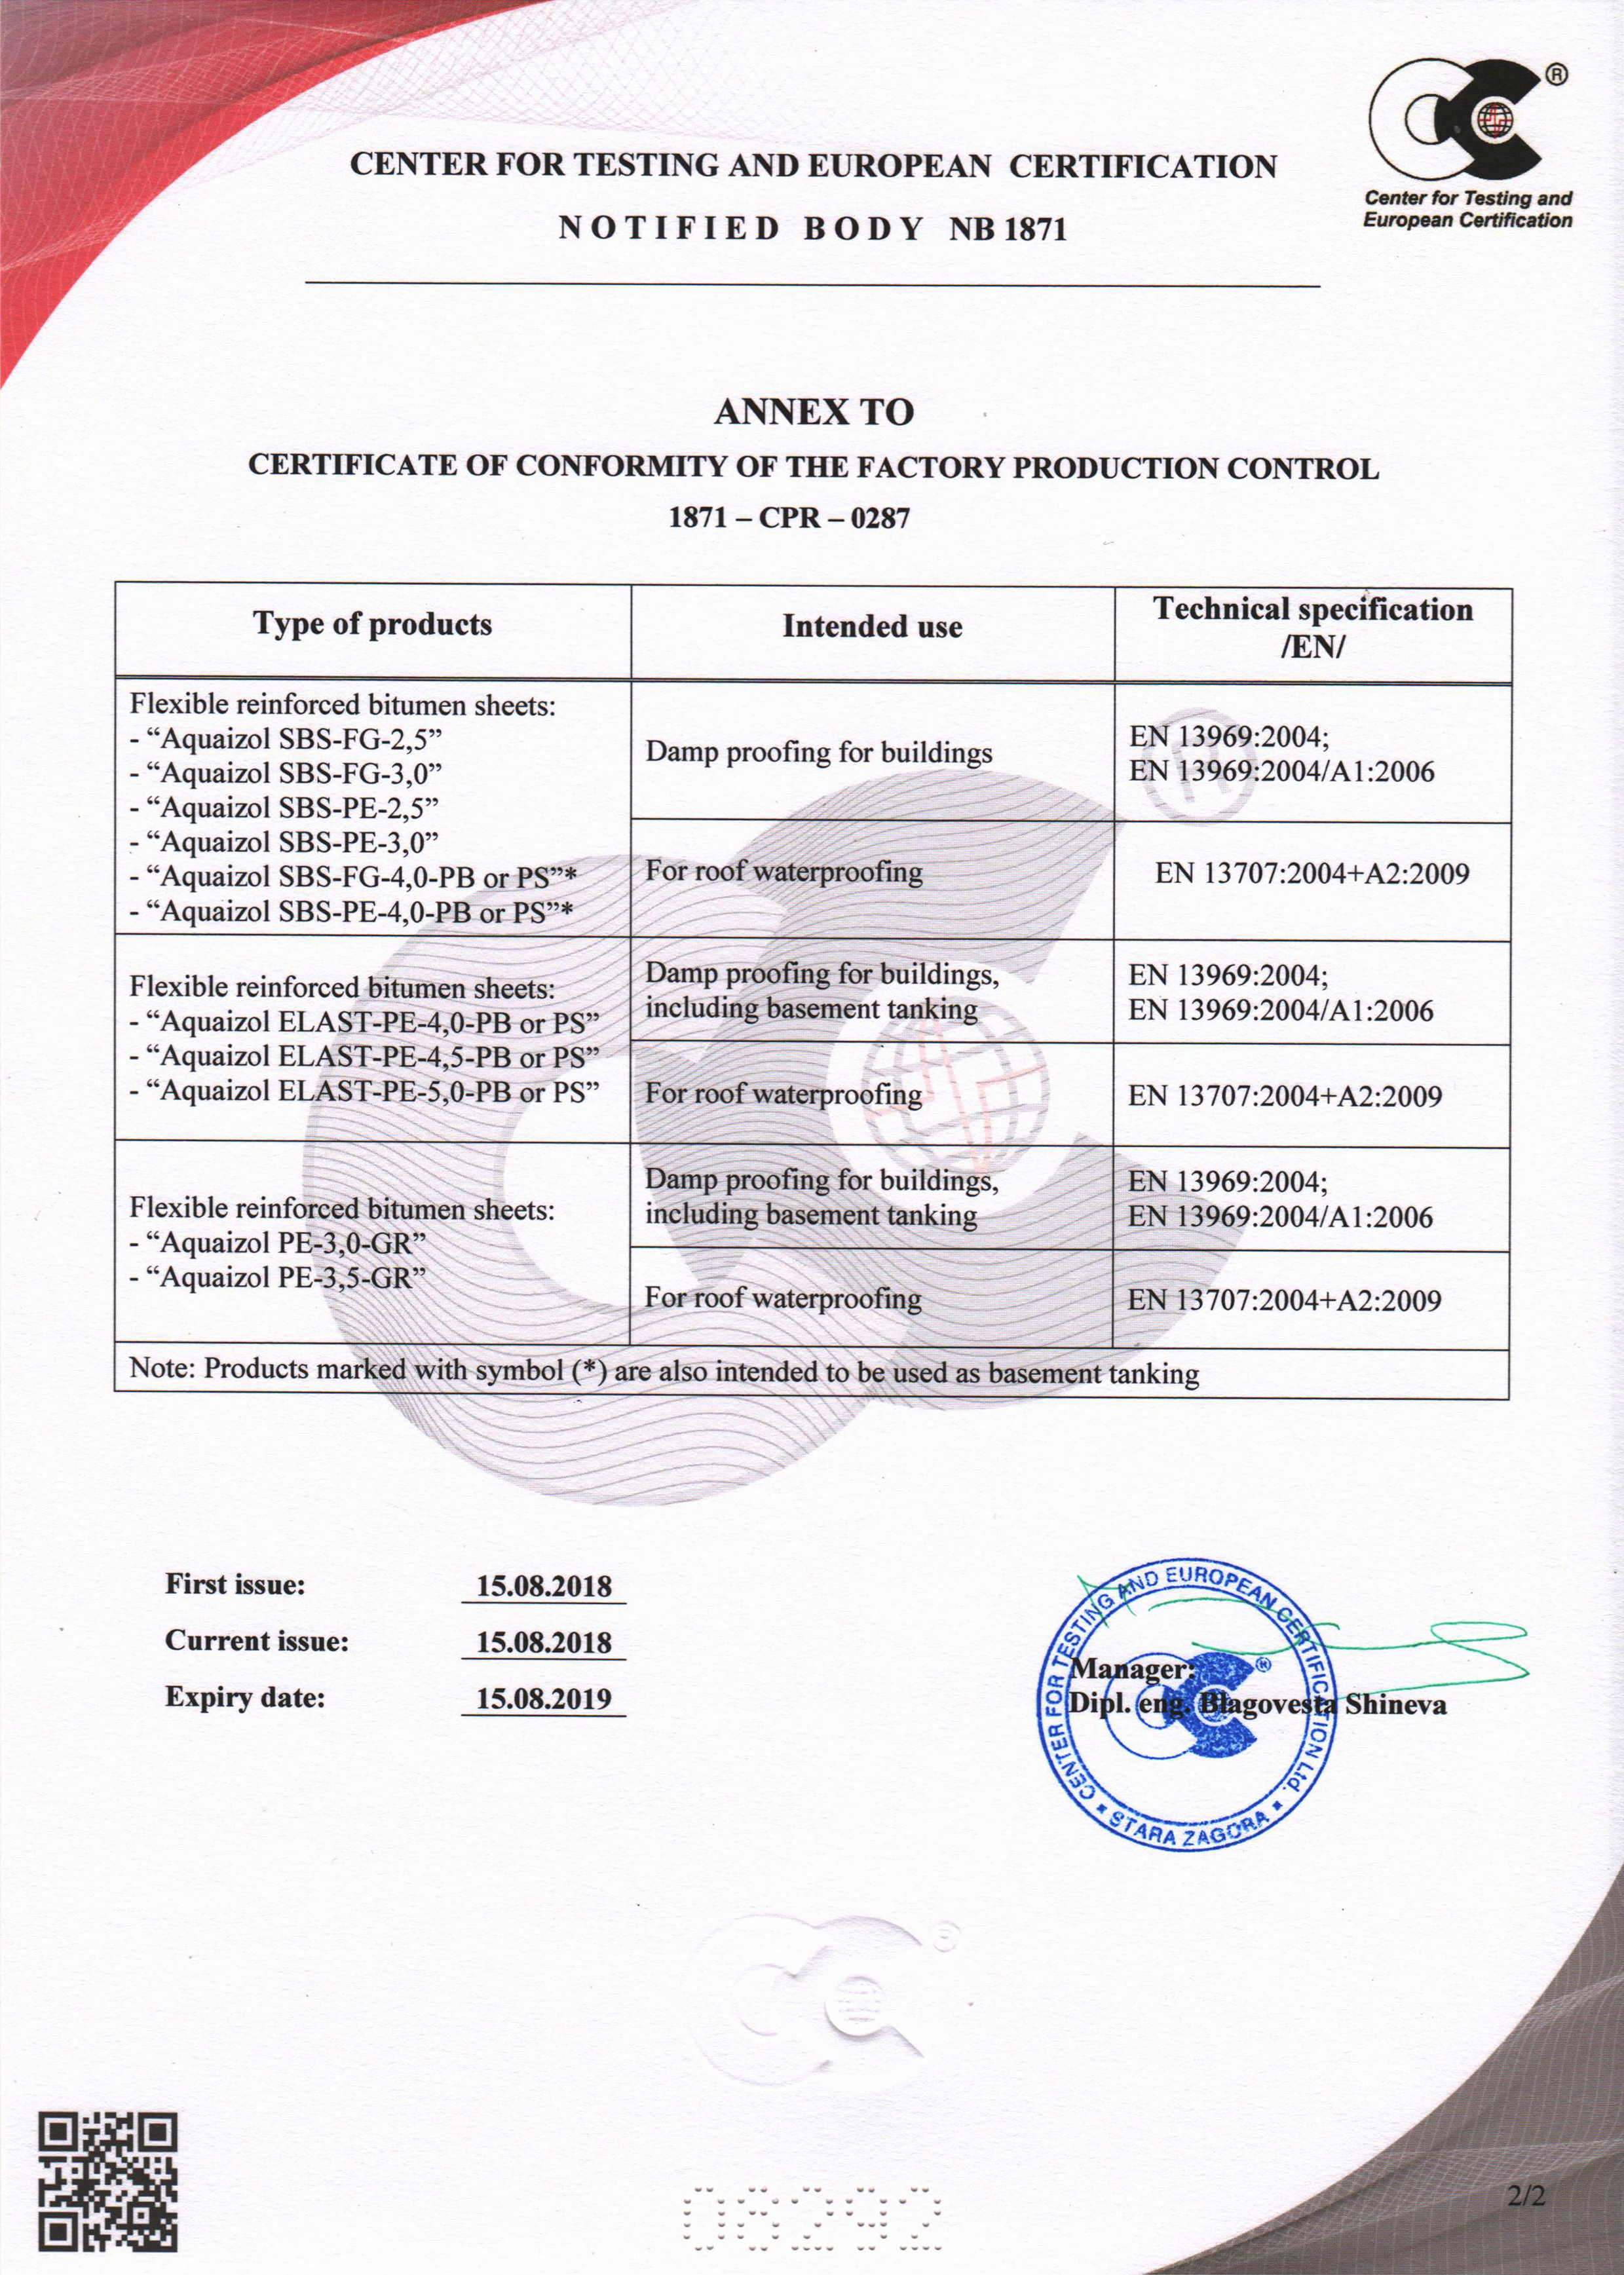 Certificate of conformity of the factory production control